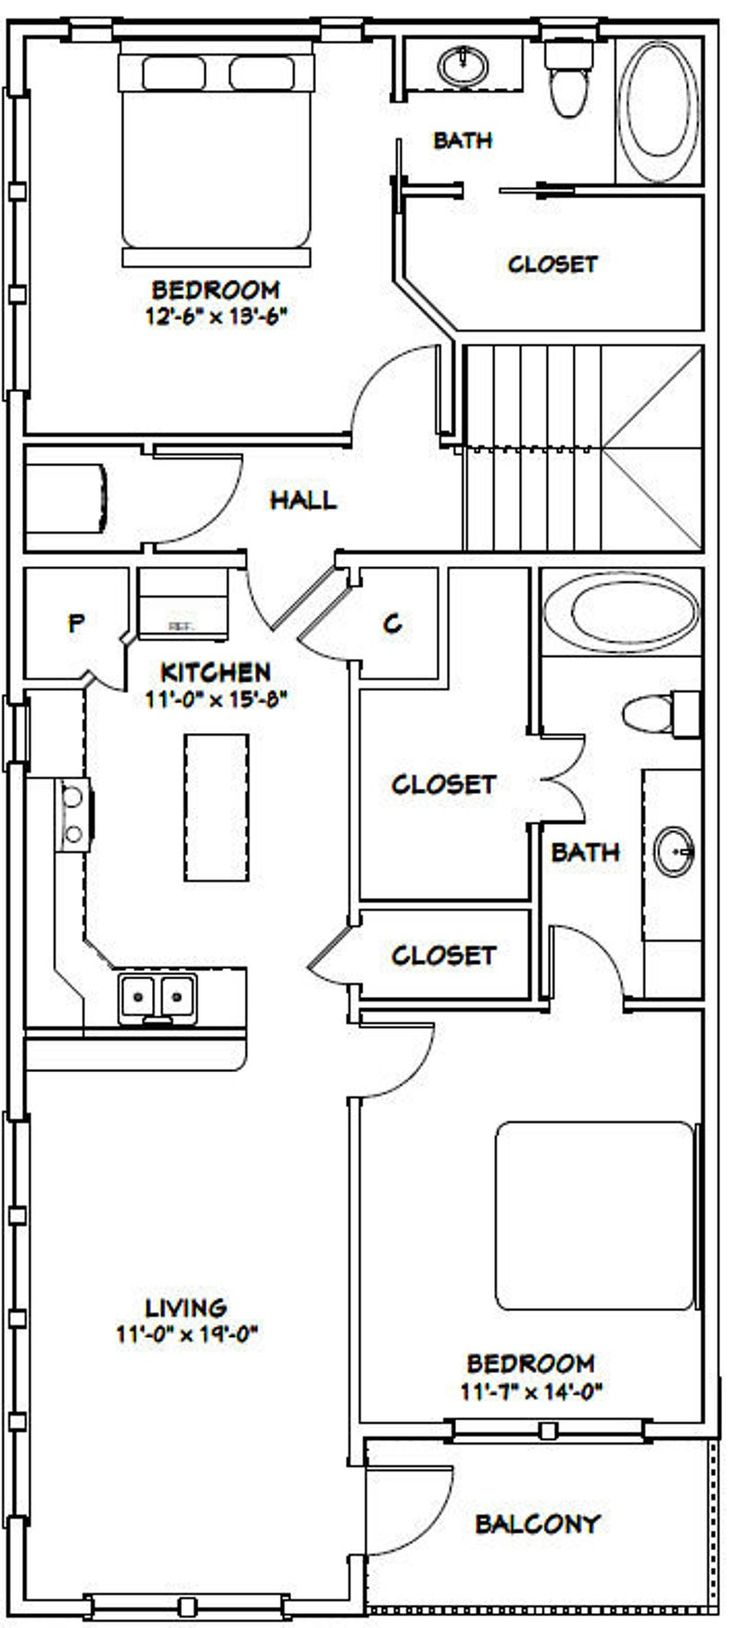 44x48 House 2Bedroom 1.5Bath 1,528 sq ft PDF